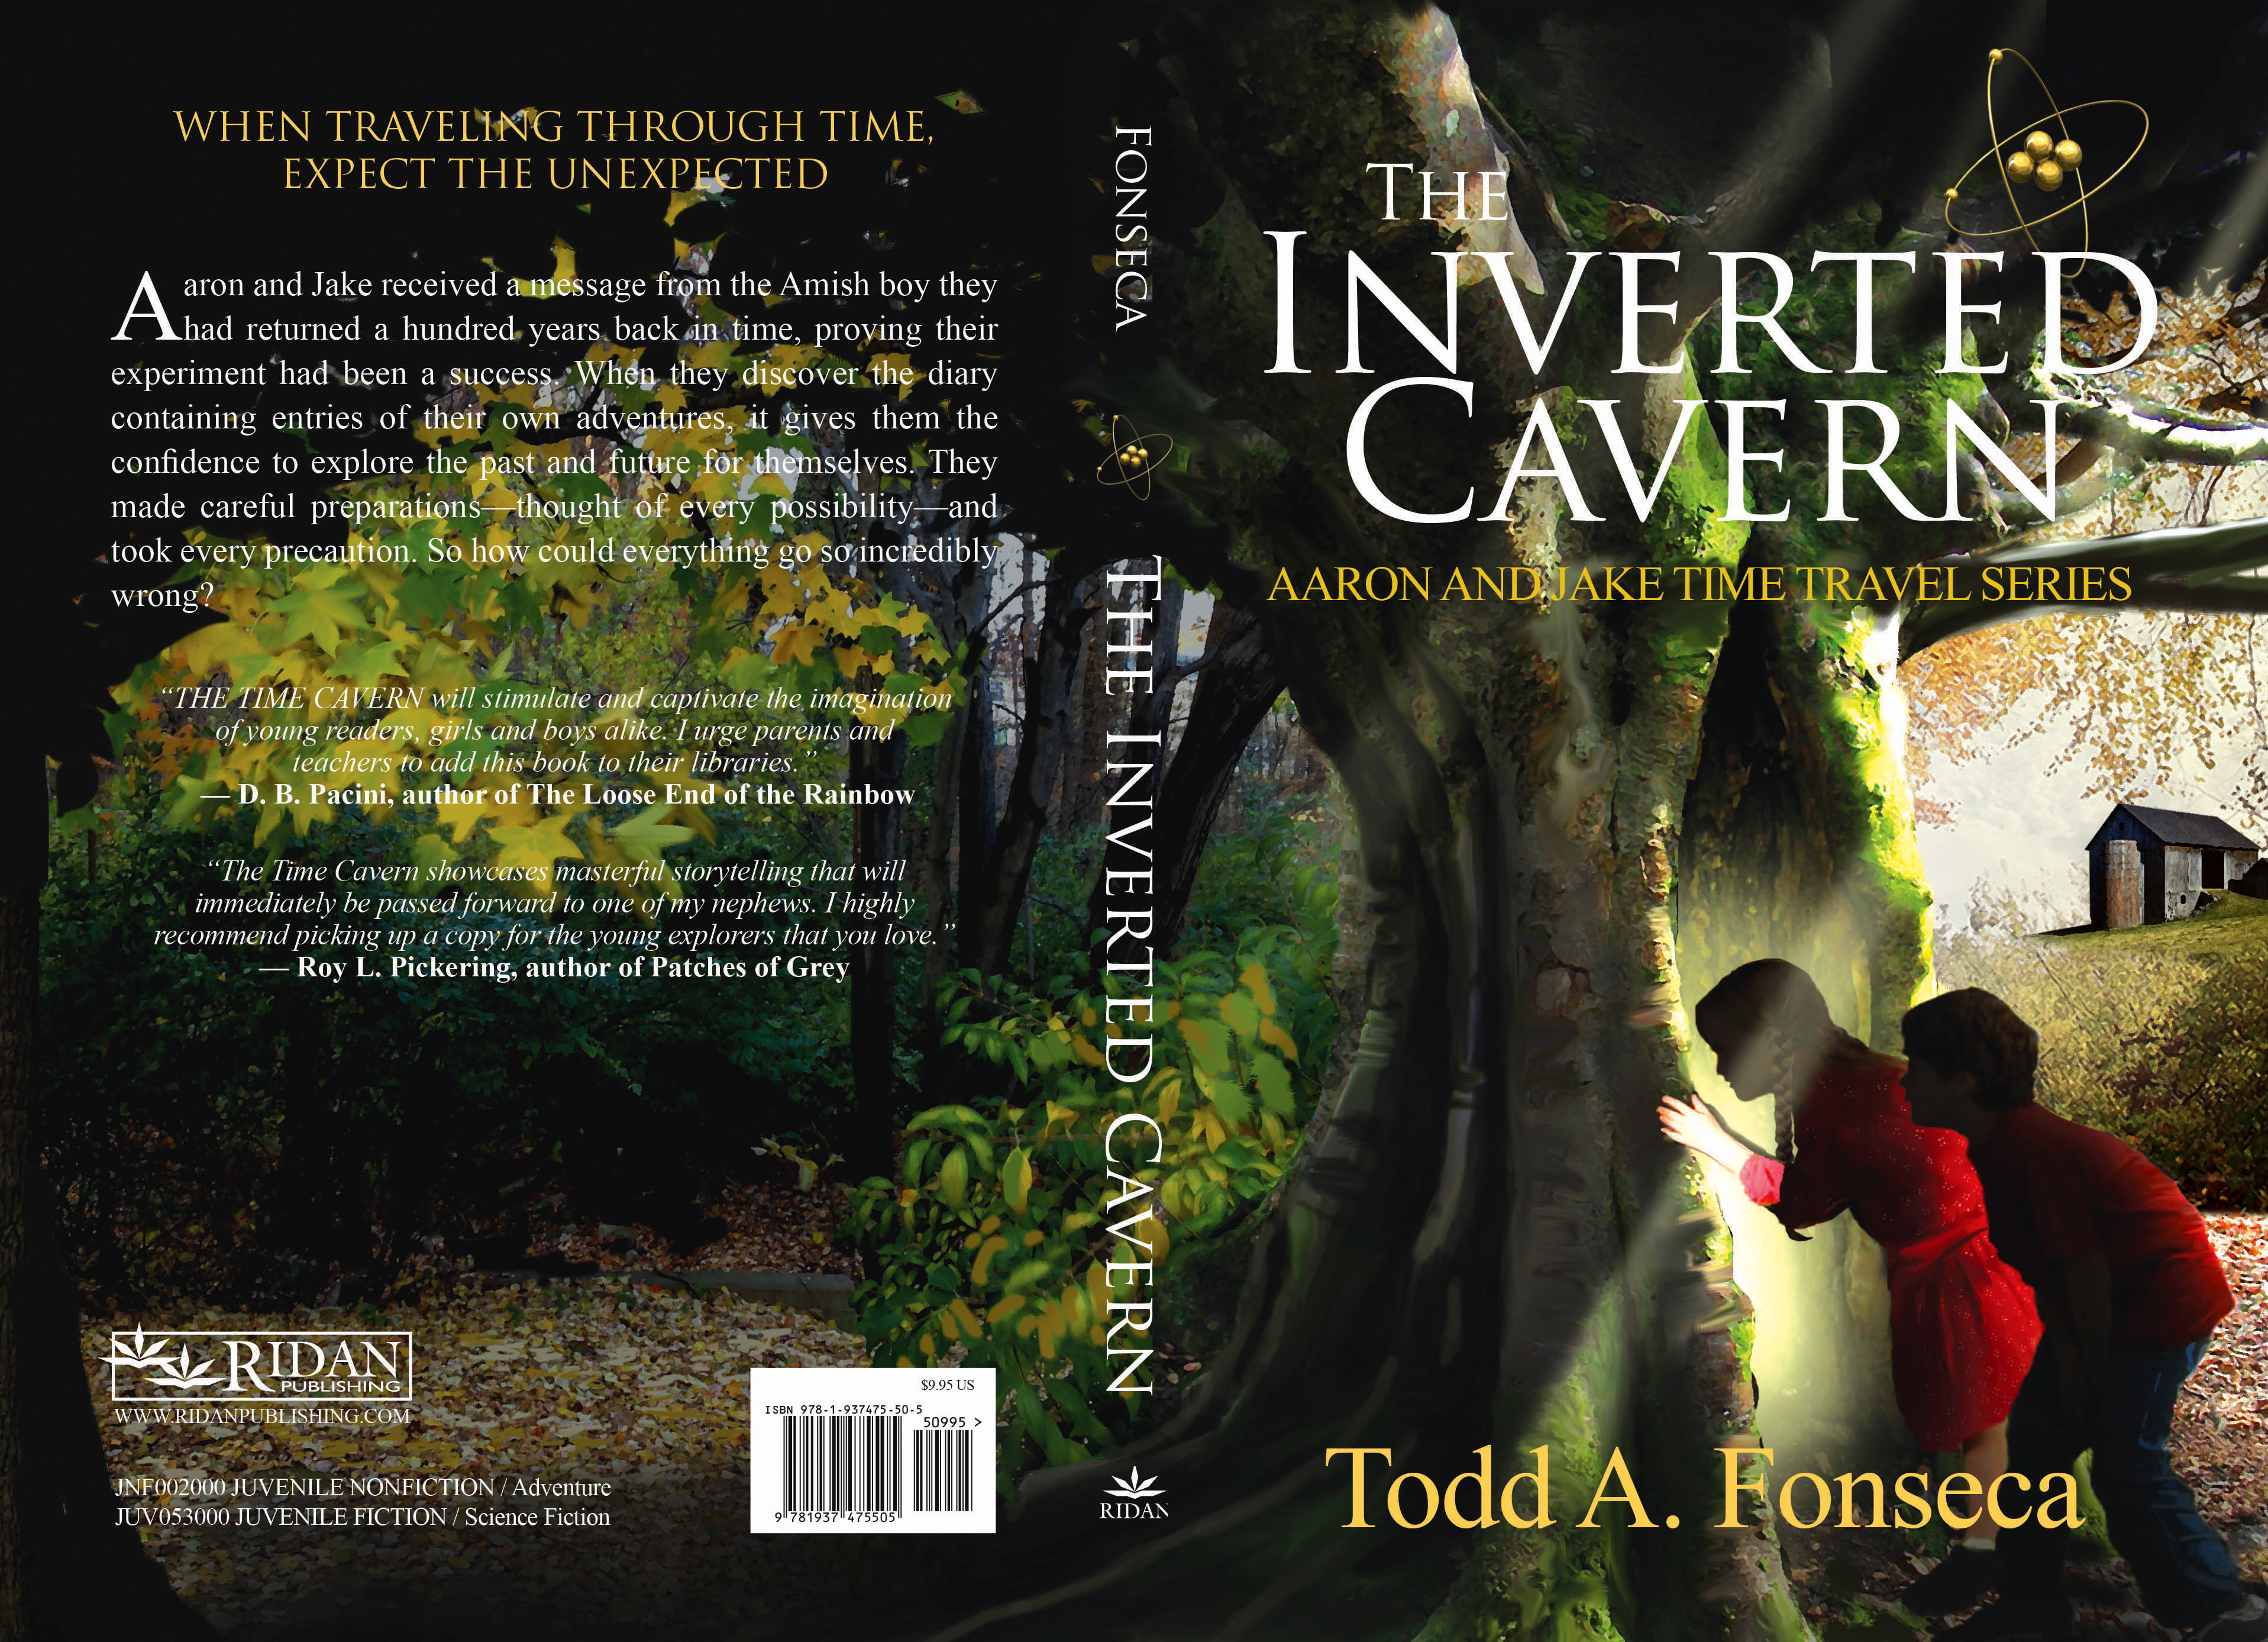 The Inverted Cavern